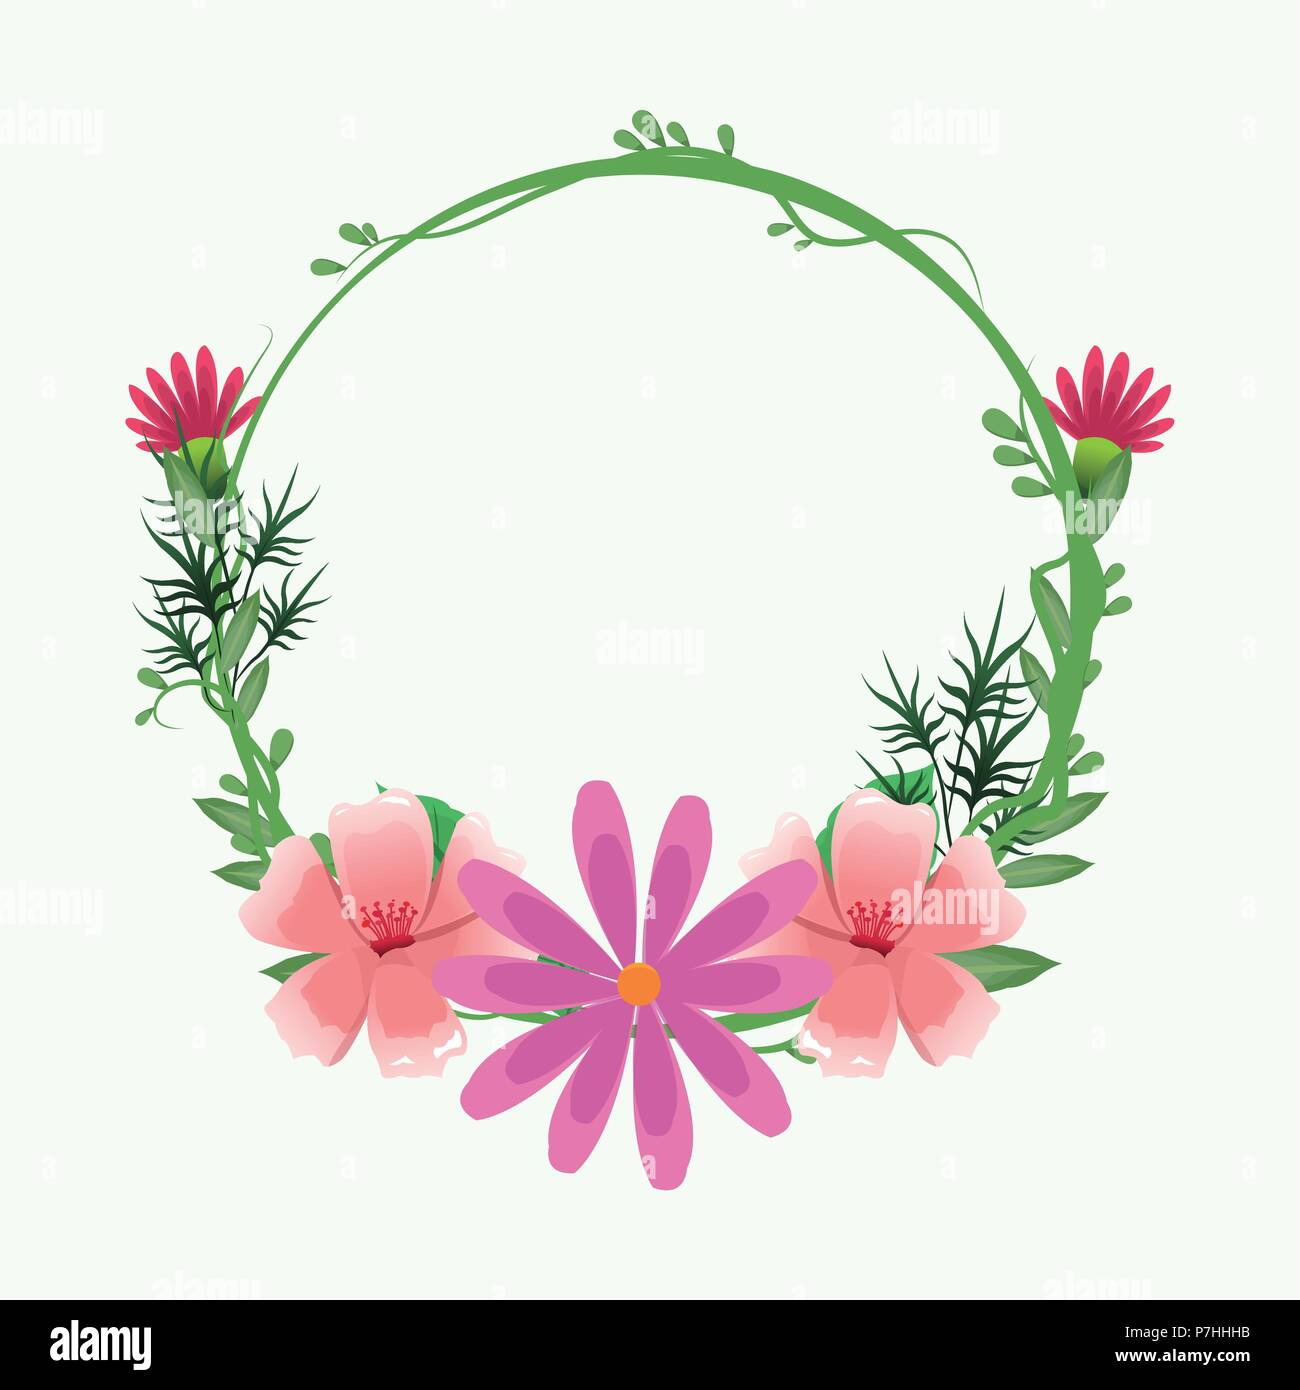 Decorative Round Frame Pink Flowers With Leaves Vector Illustration